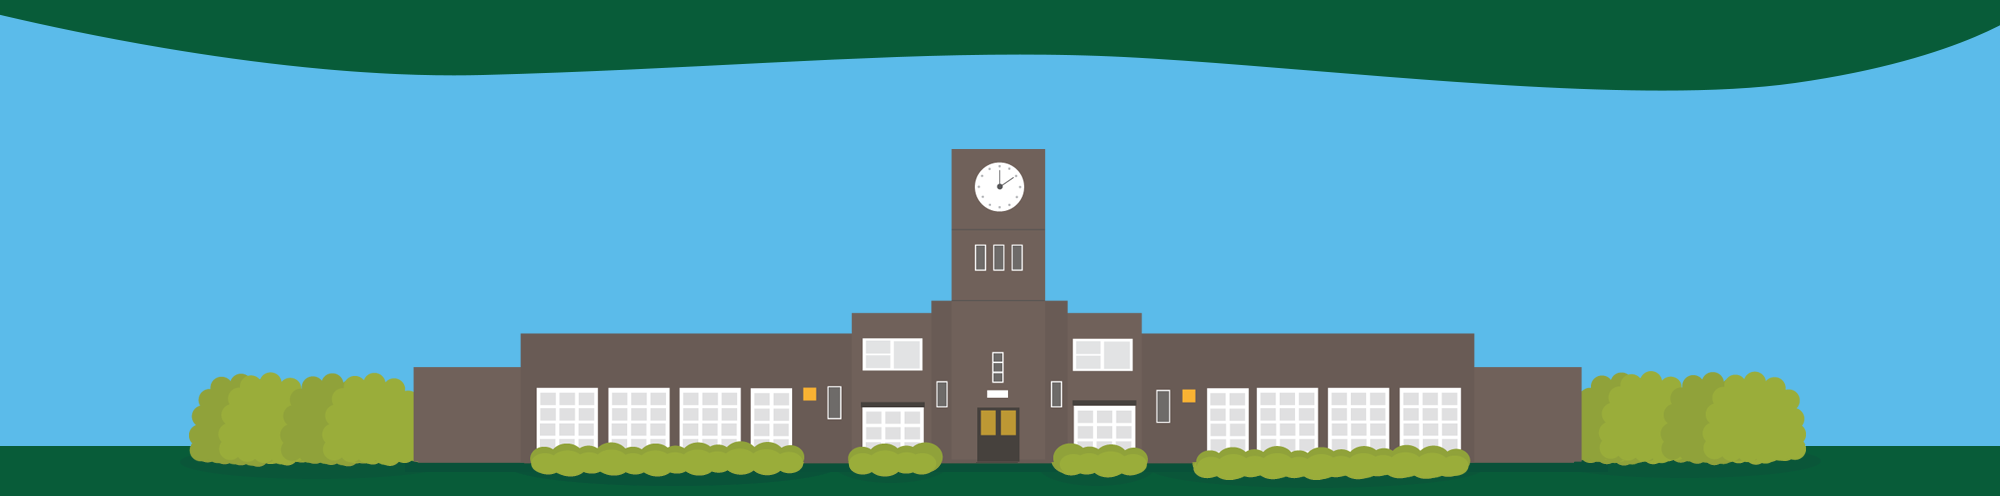 Whinneybanks Primary School Tower Clock